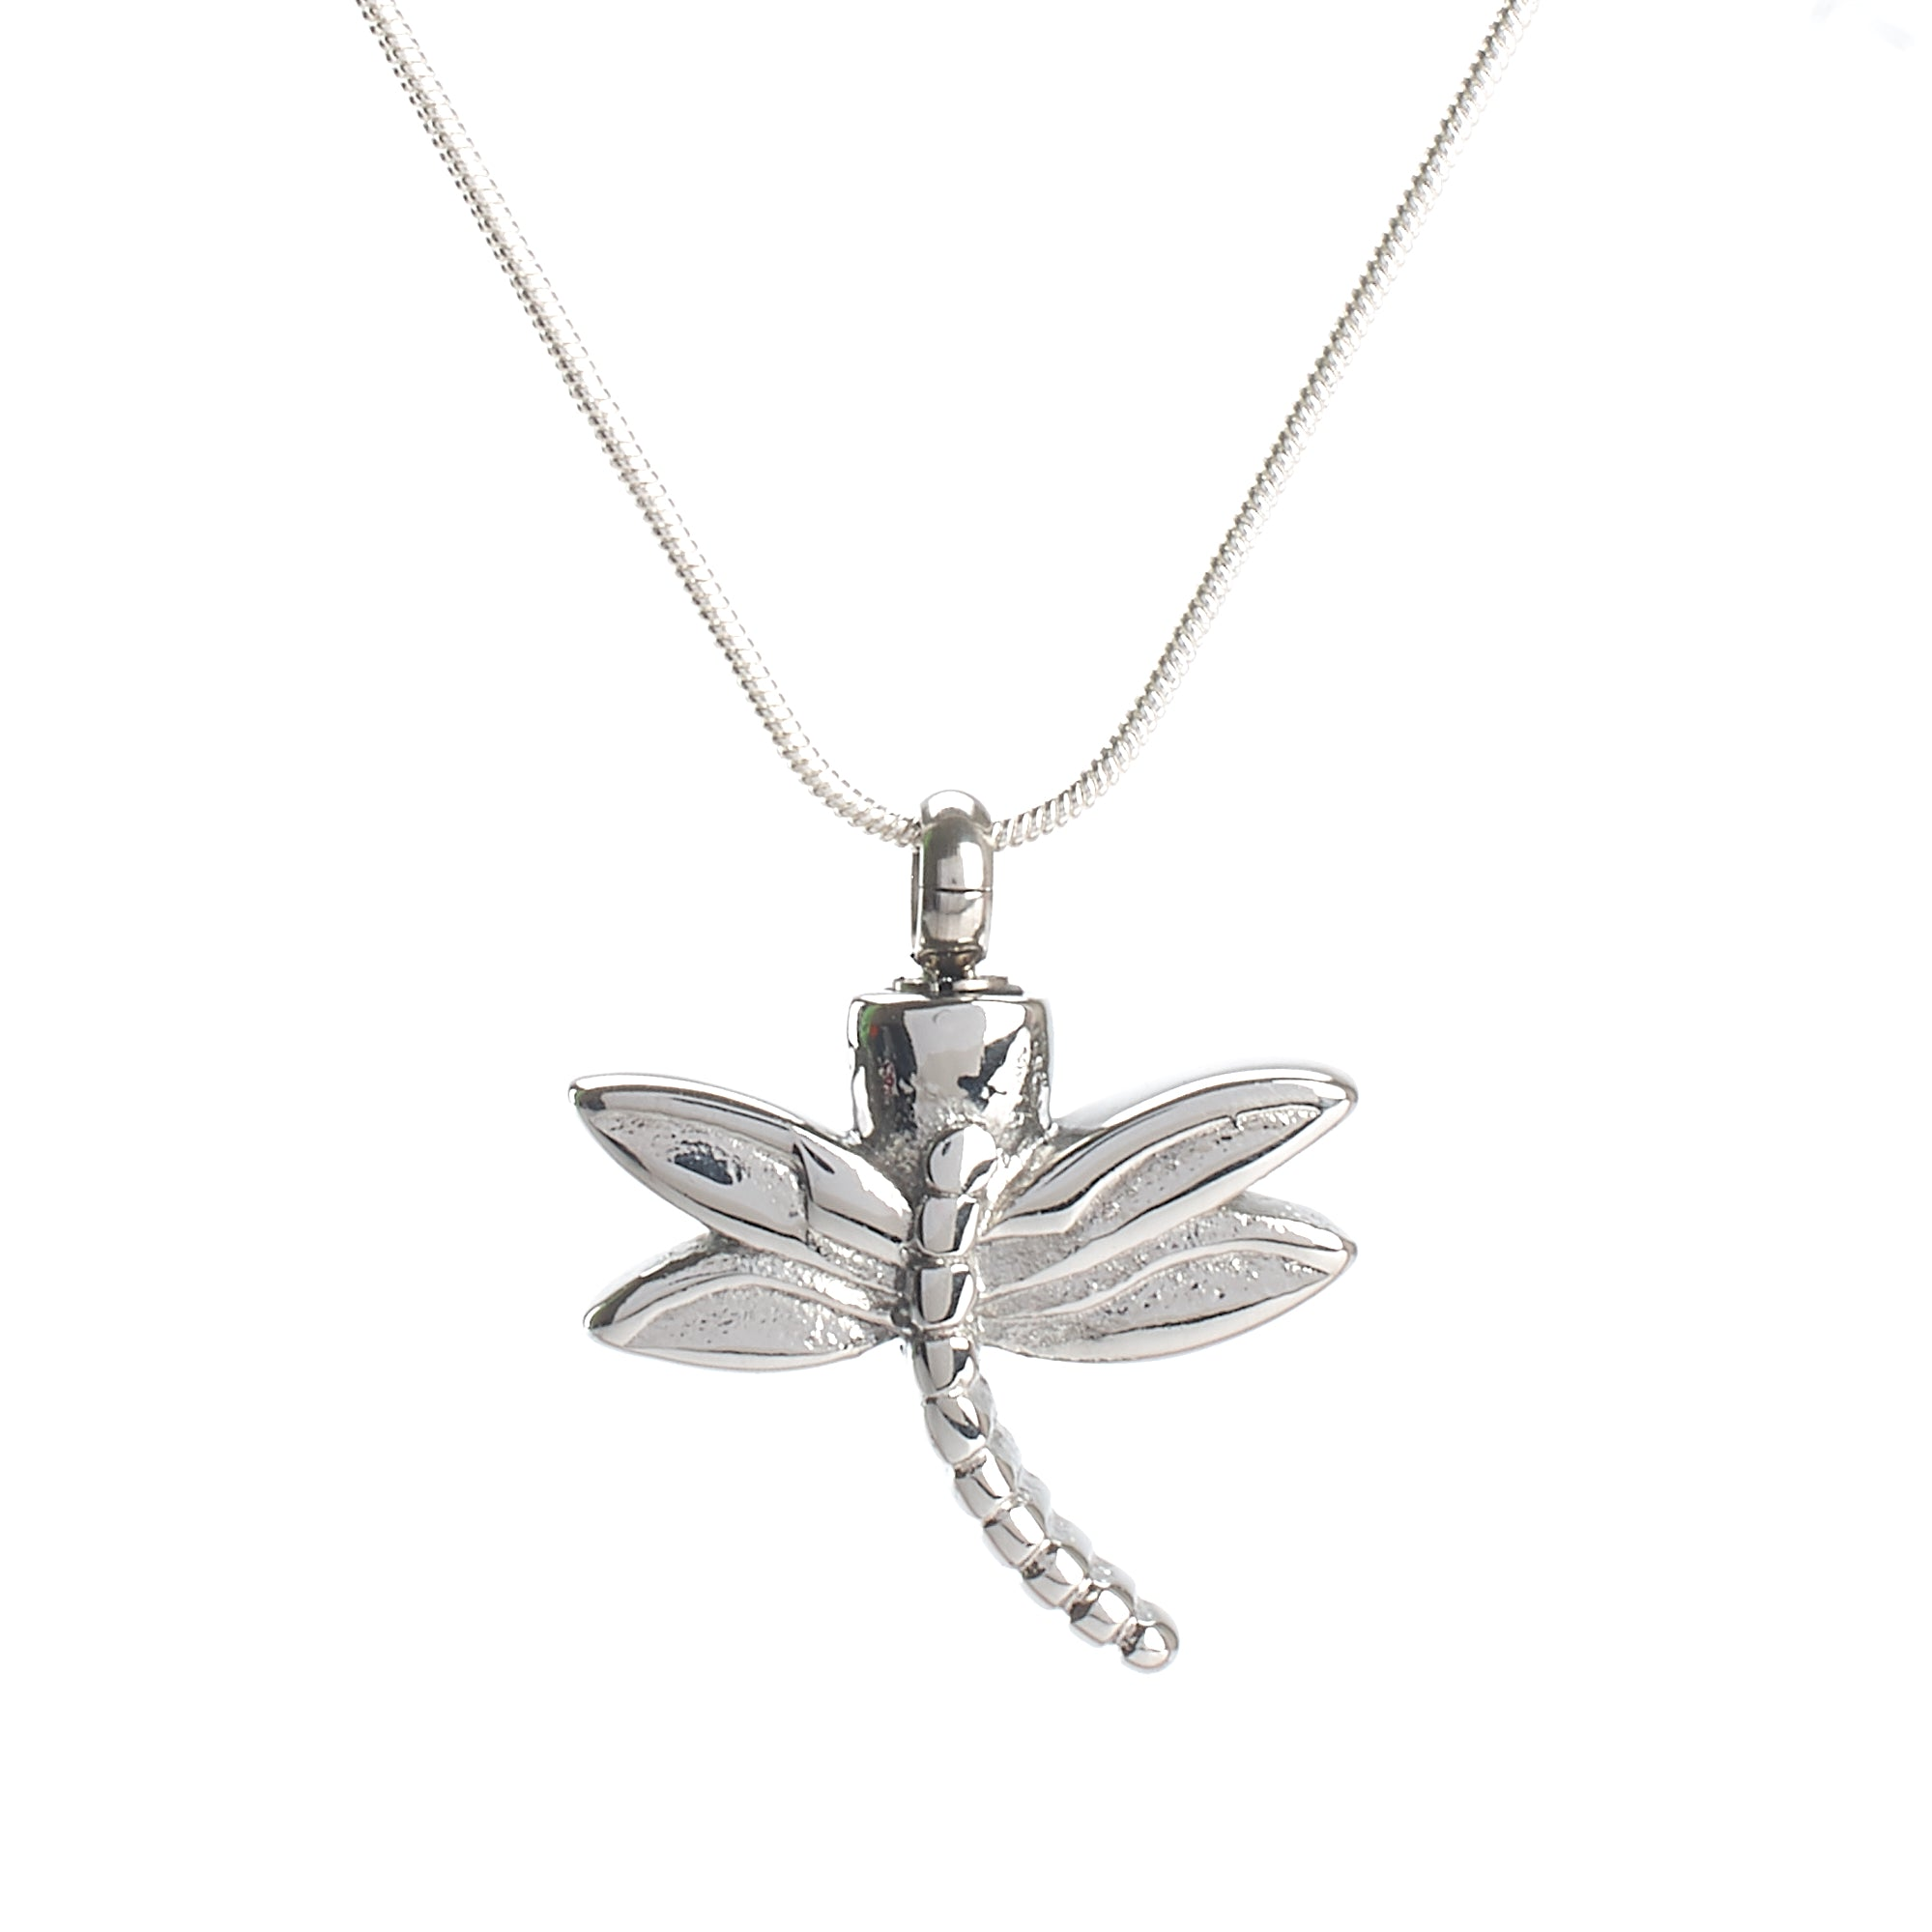 Cremation Pendant - A High Shine Silver Dragonfly